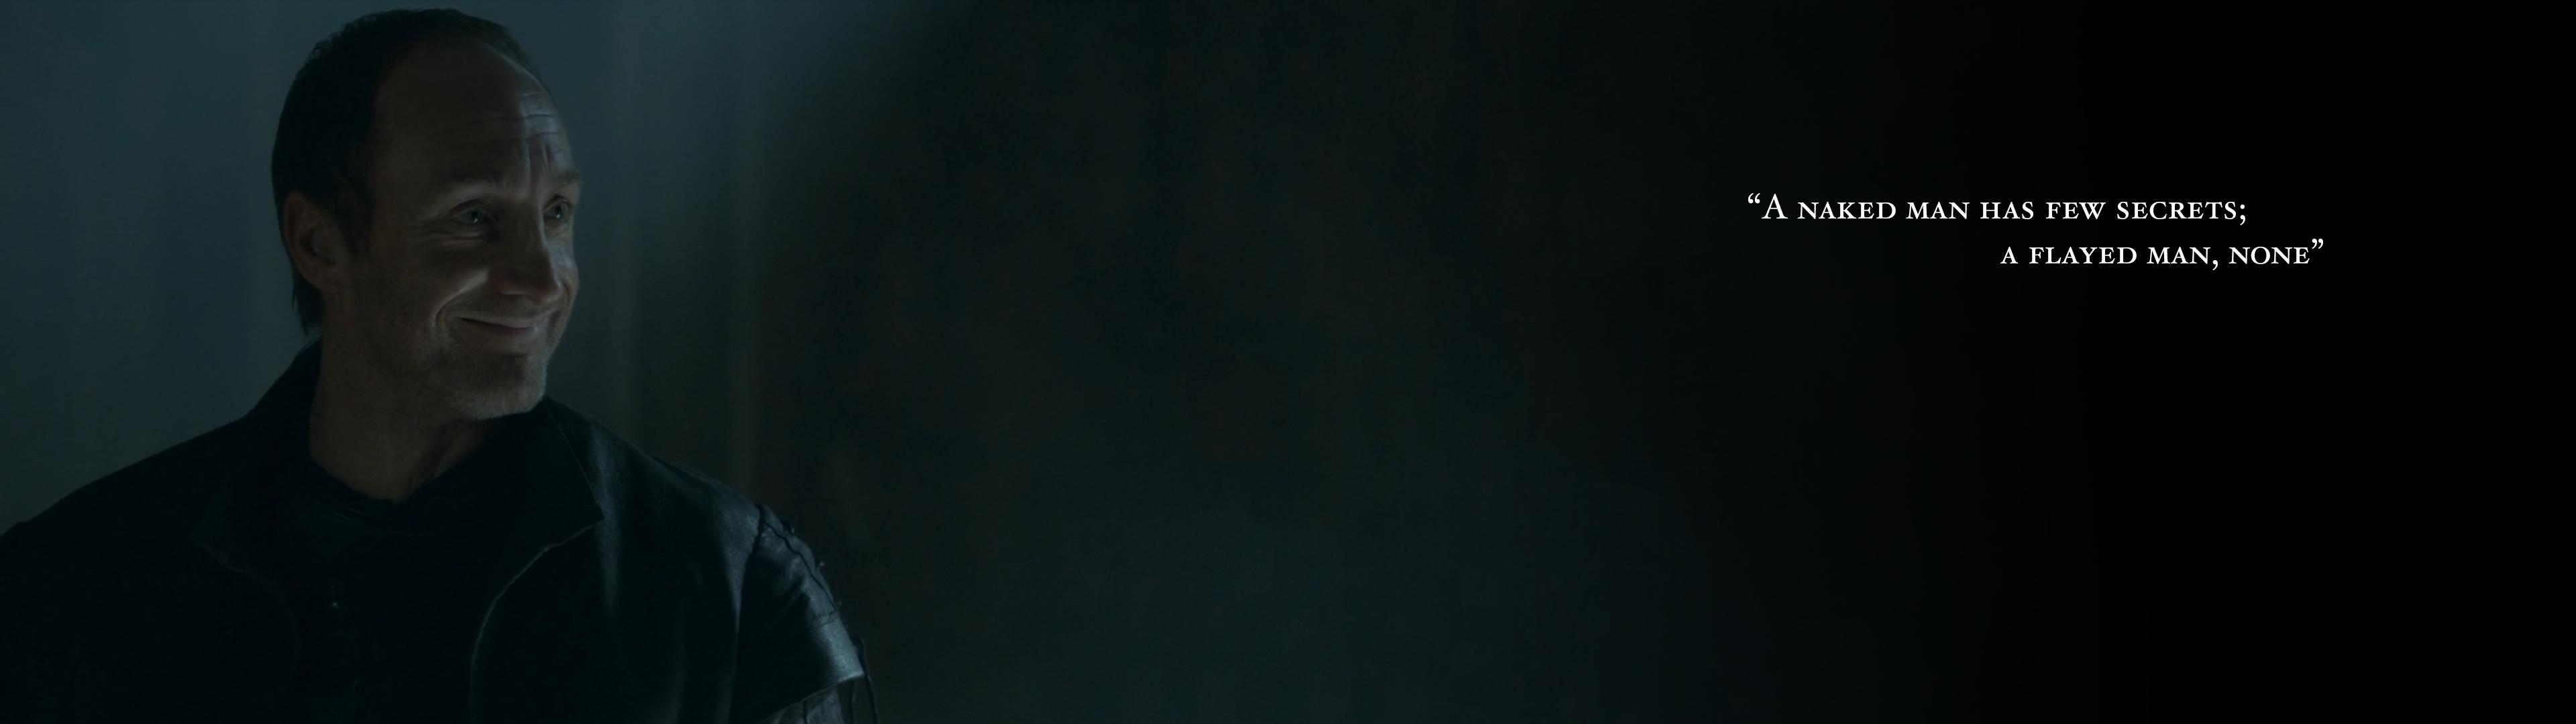 S03E10] Roose Bolton wallpaper that I made 3840x1080 gameofthrones 3840x1080